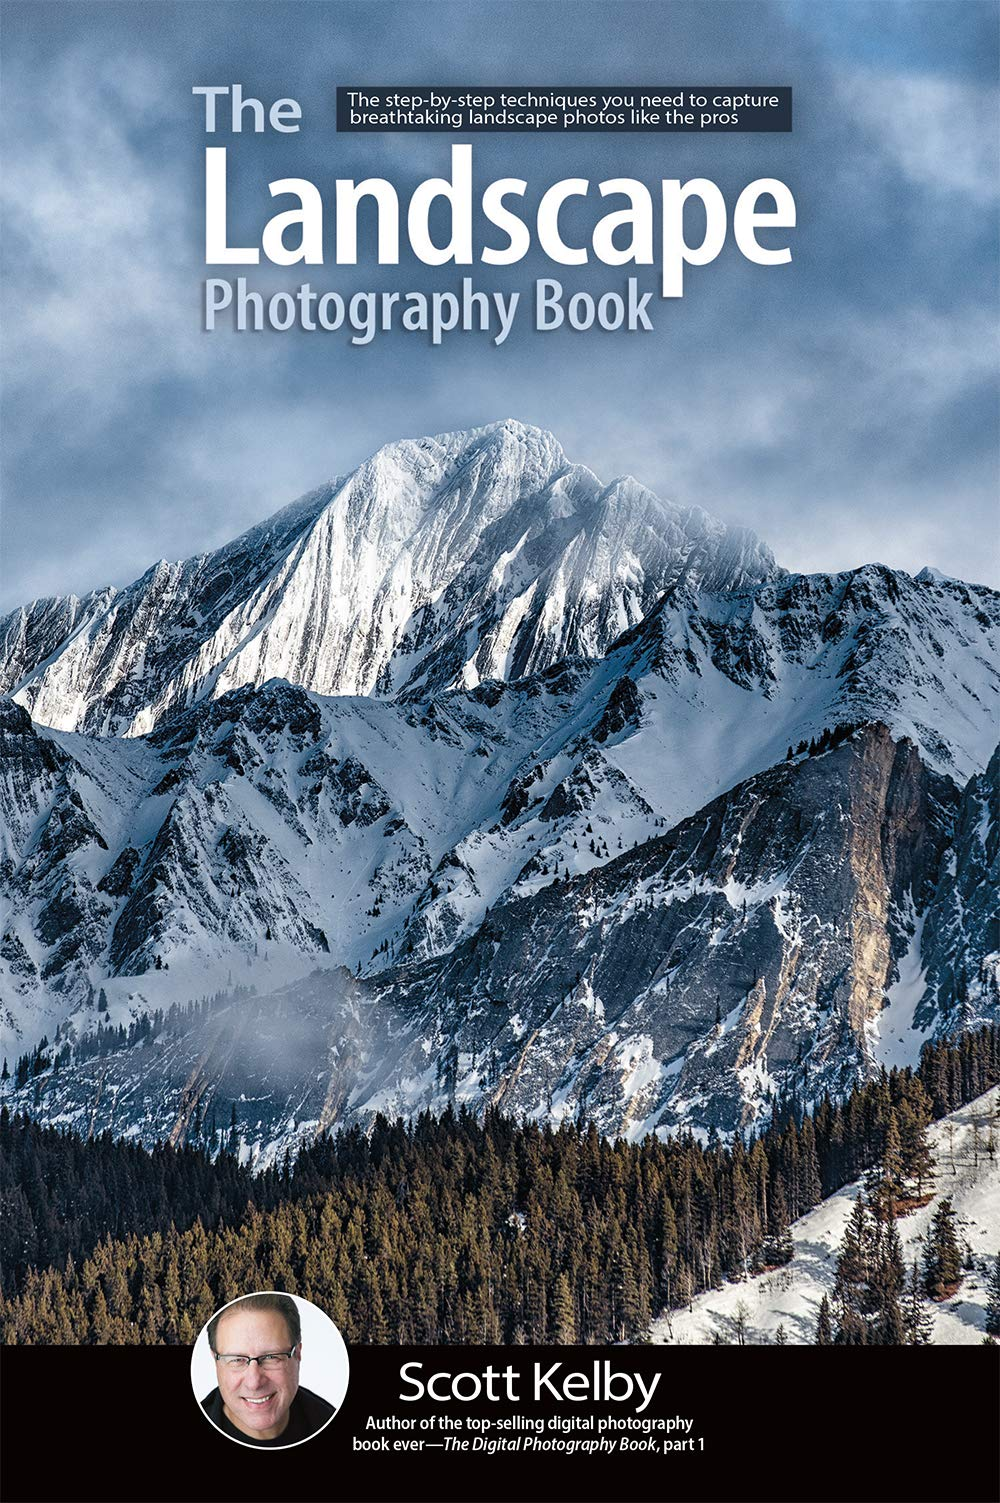 Image OfThe Landscape Photography Book: The Step-by-step Techniques You Need To Capture Breathtaking Landscape Photos Like The Pros